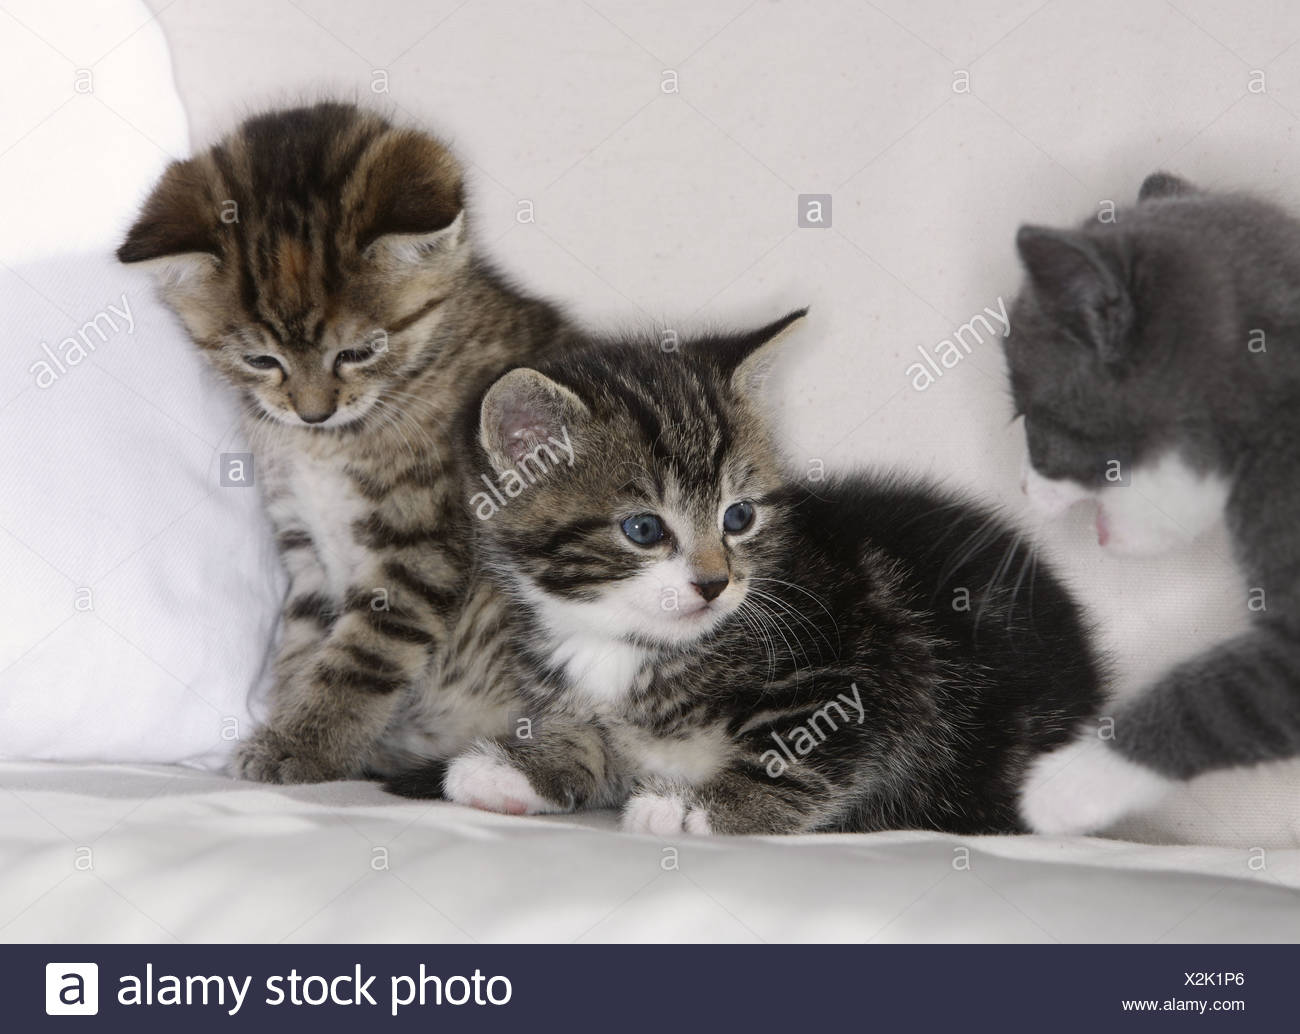 couch cats young animals mammals pets house cat cat boy cat baby